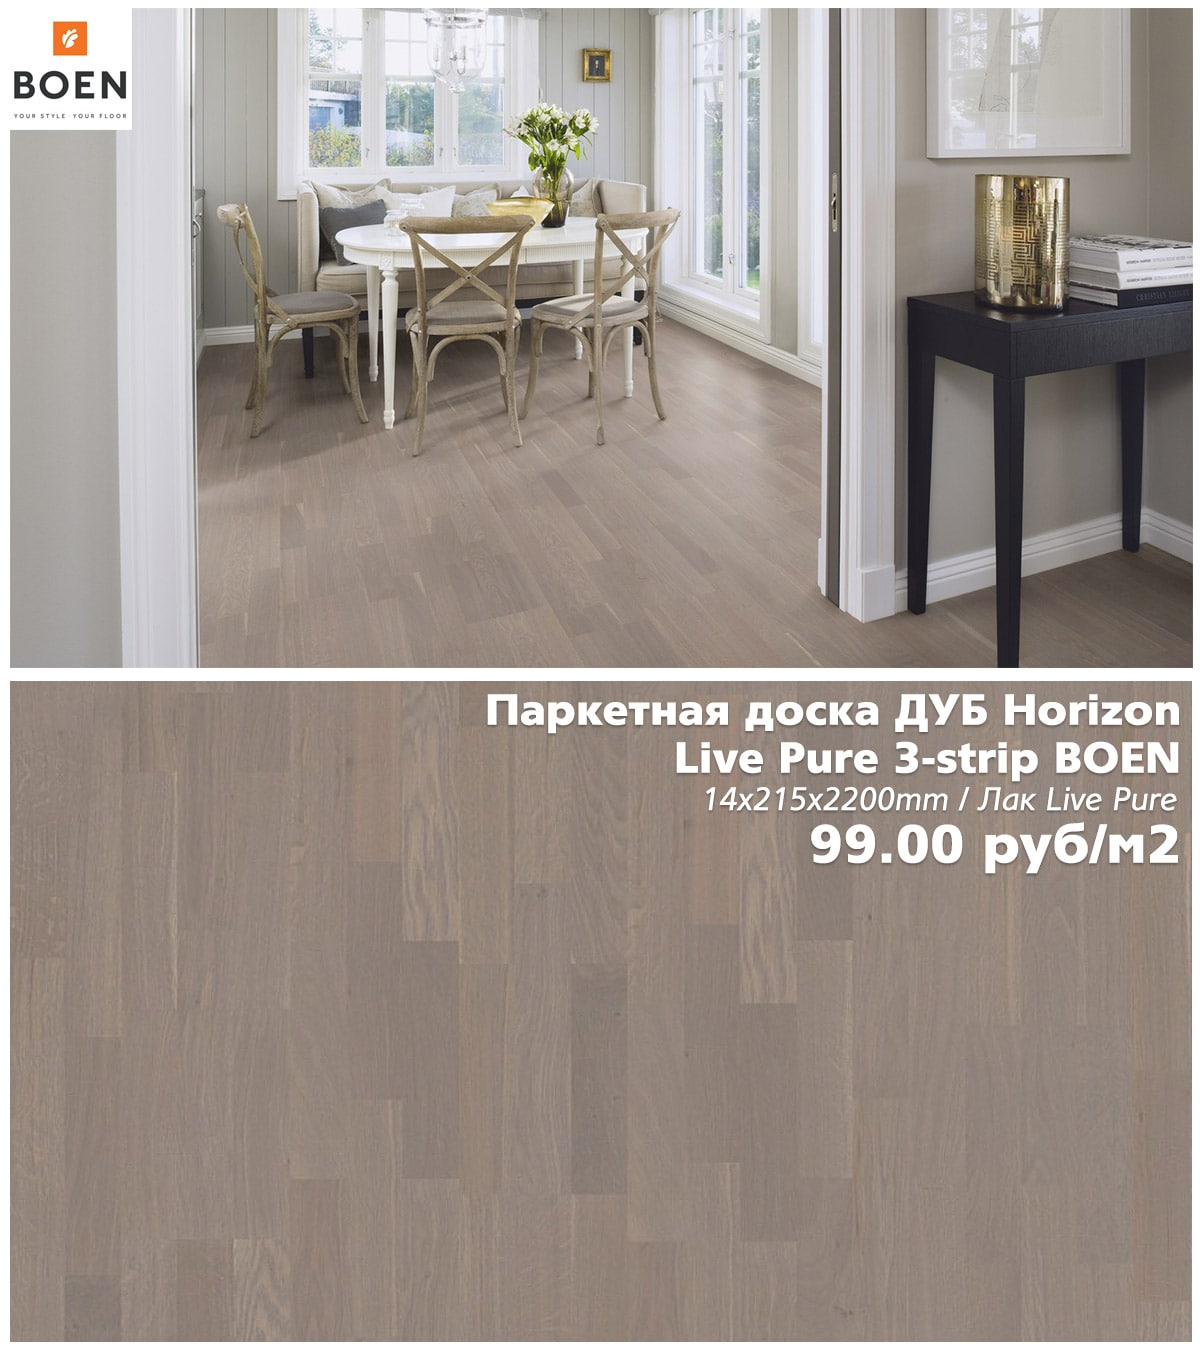 Дуб Horizon Live Pure 3-strip